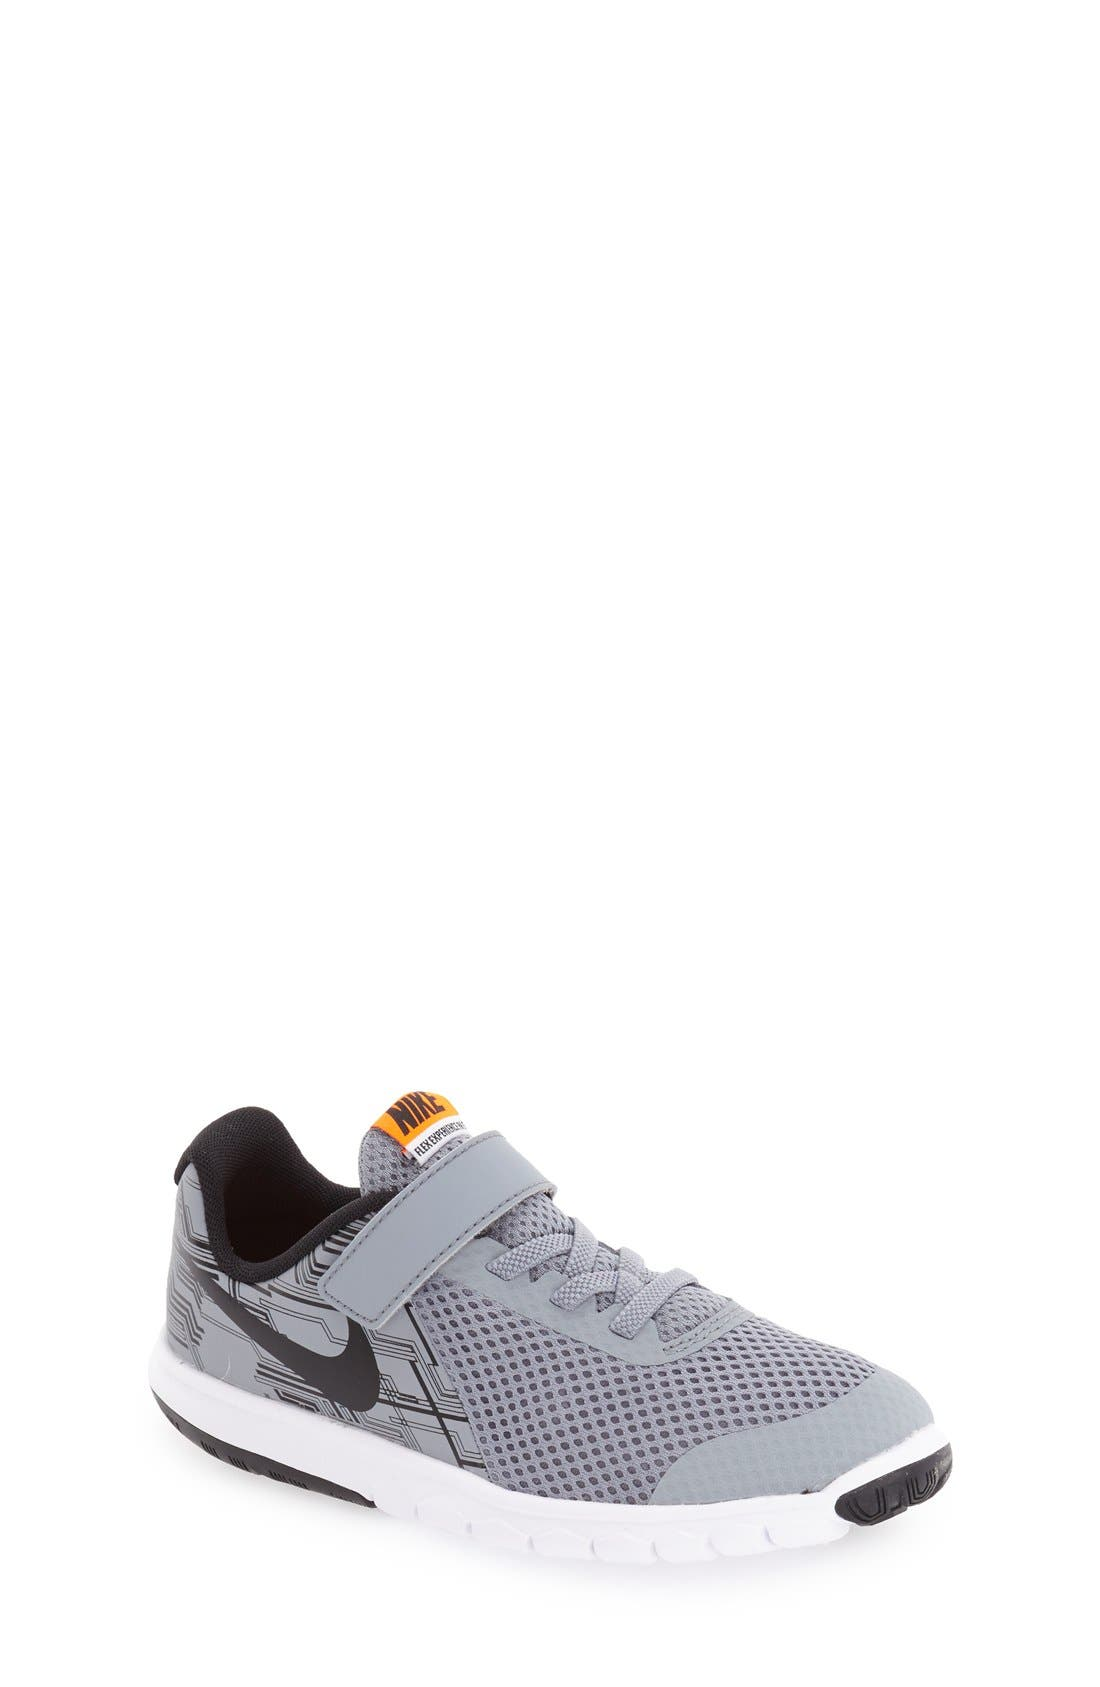 'Flex Experience 5 Print' Running Shoe, Main, color, 001